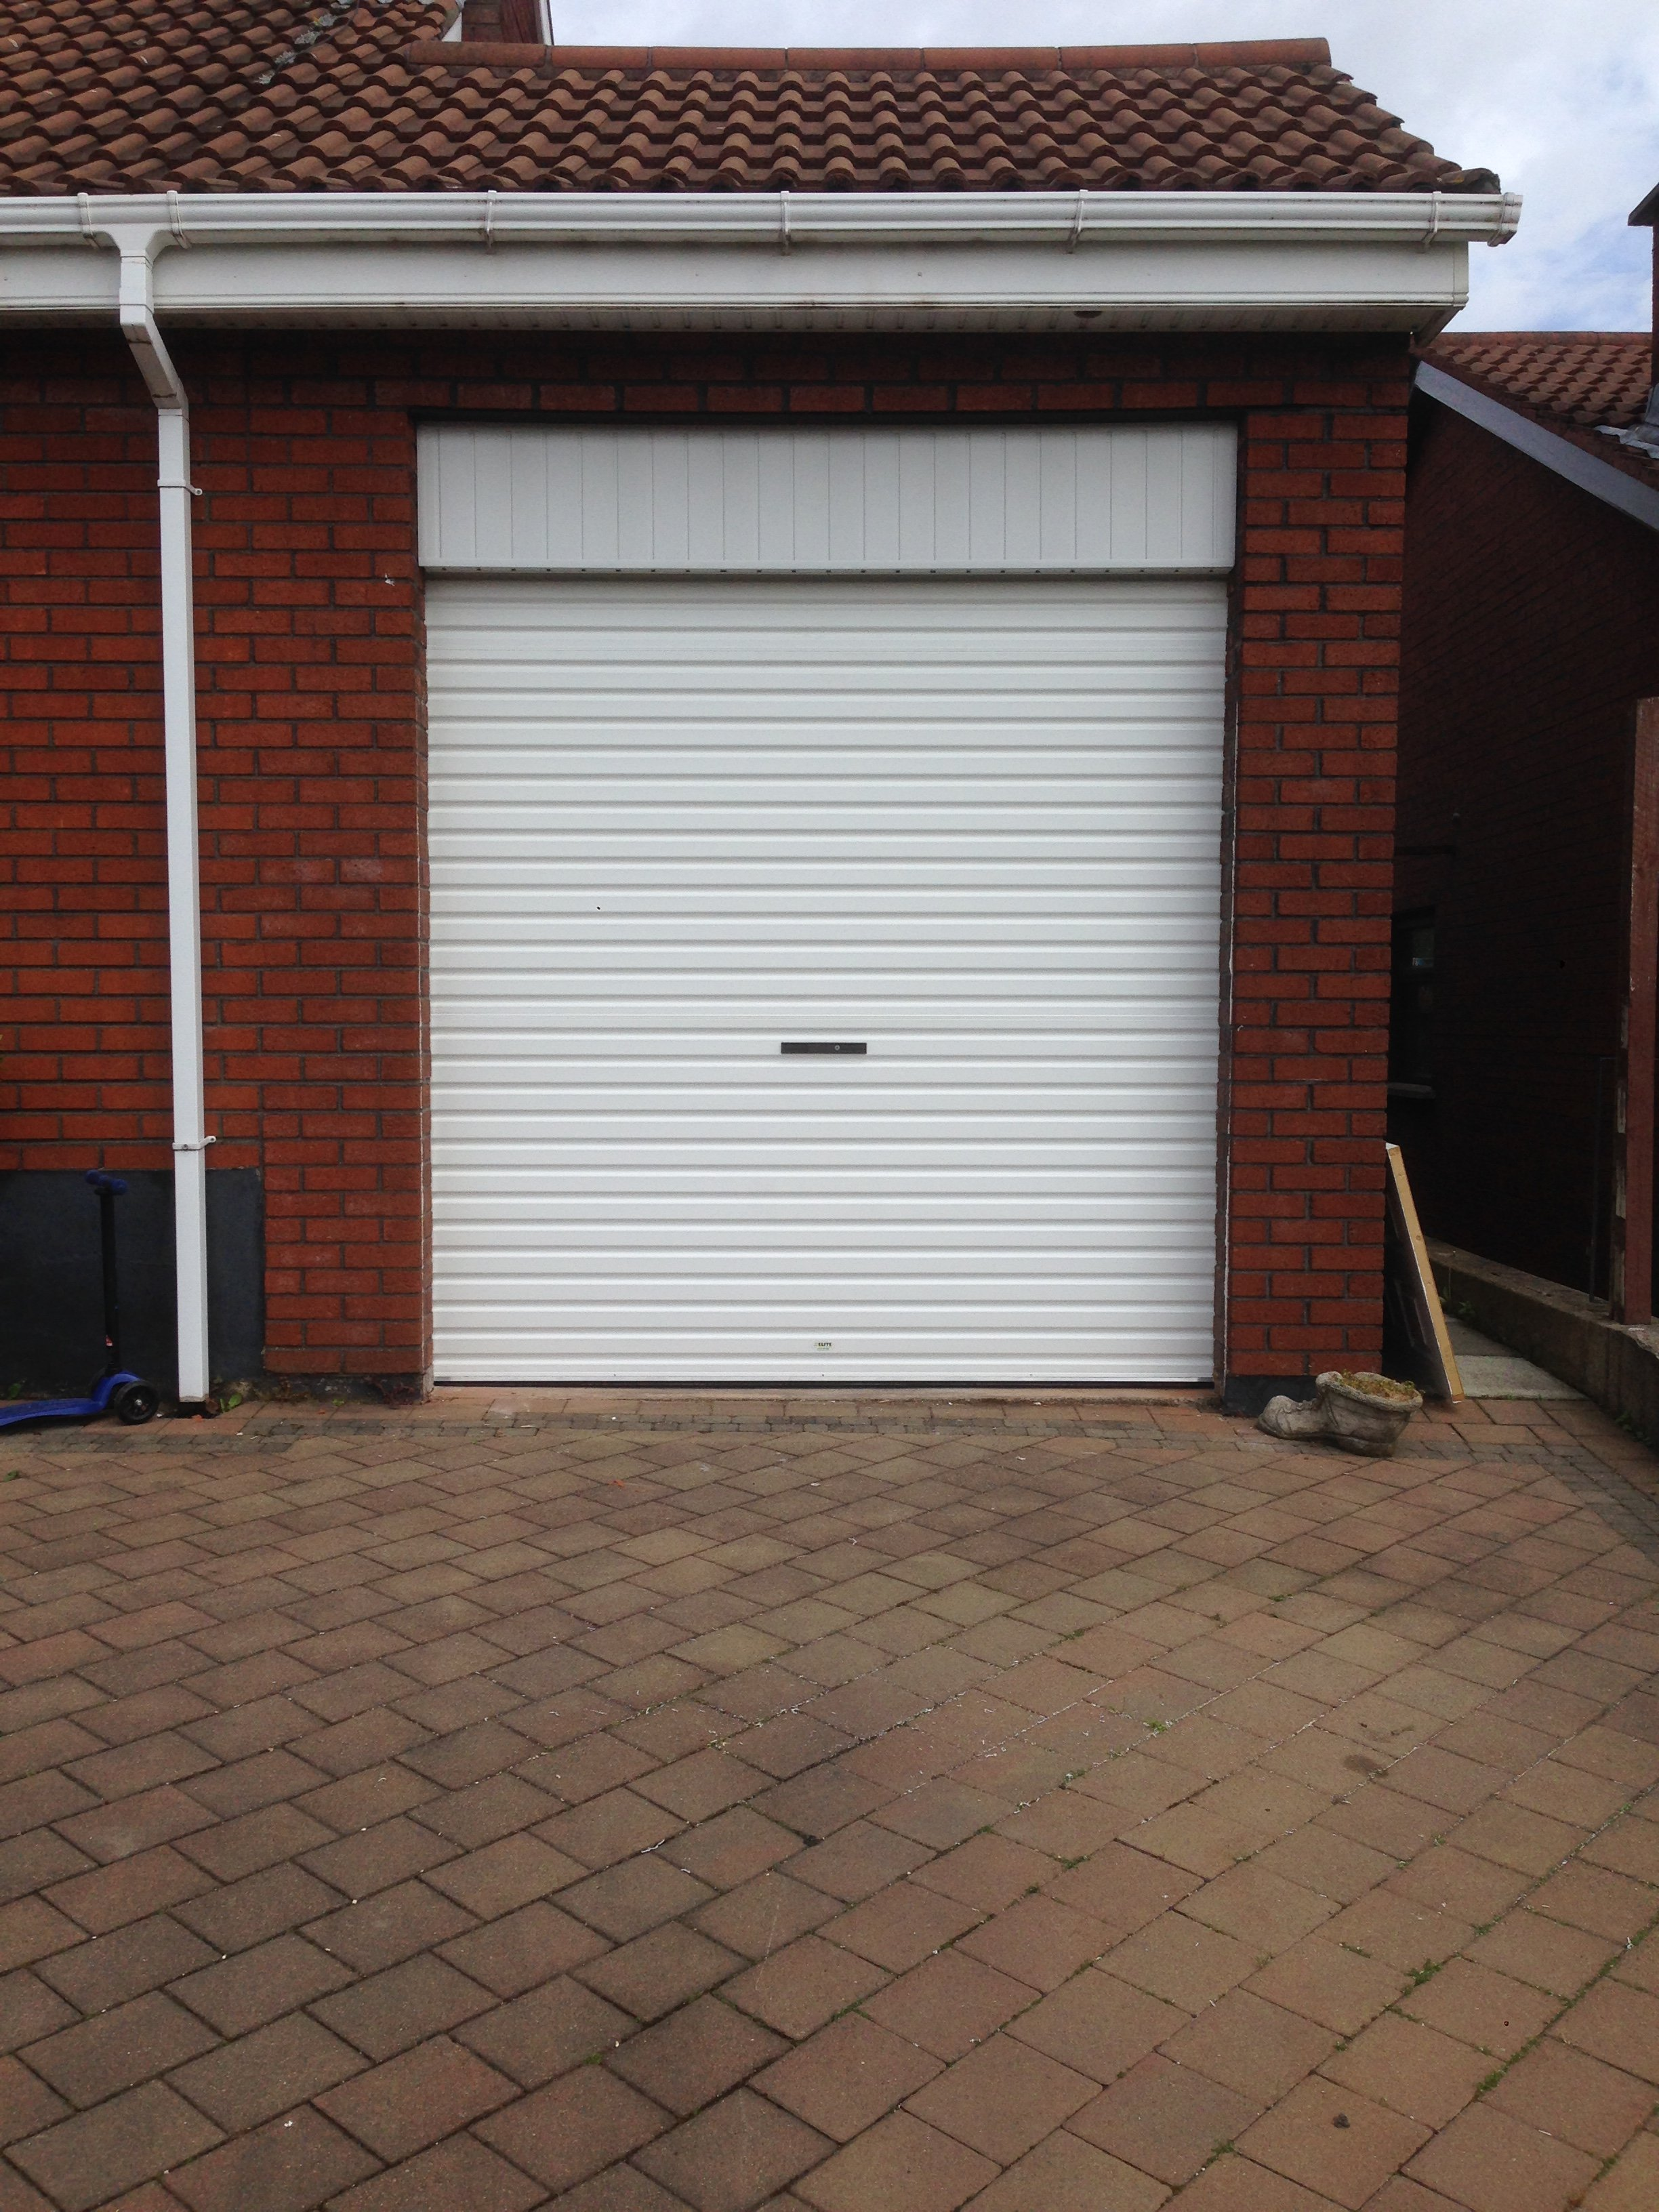 large protector for change door shed plans outdoor intended how buildings carport garage to include a elite